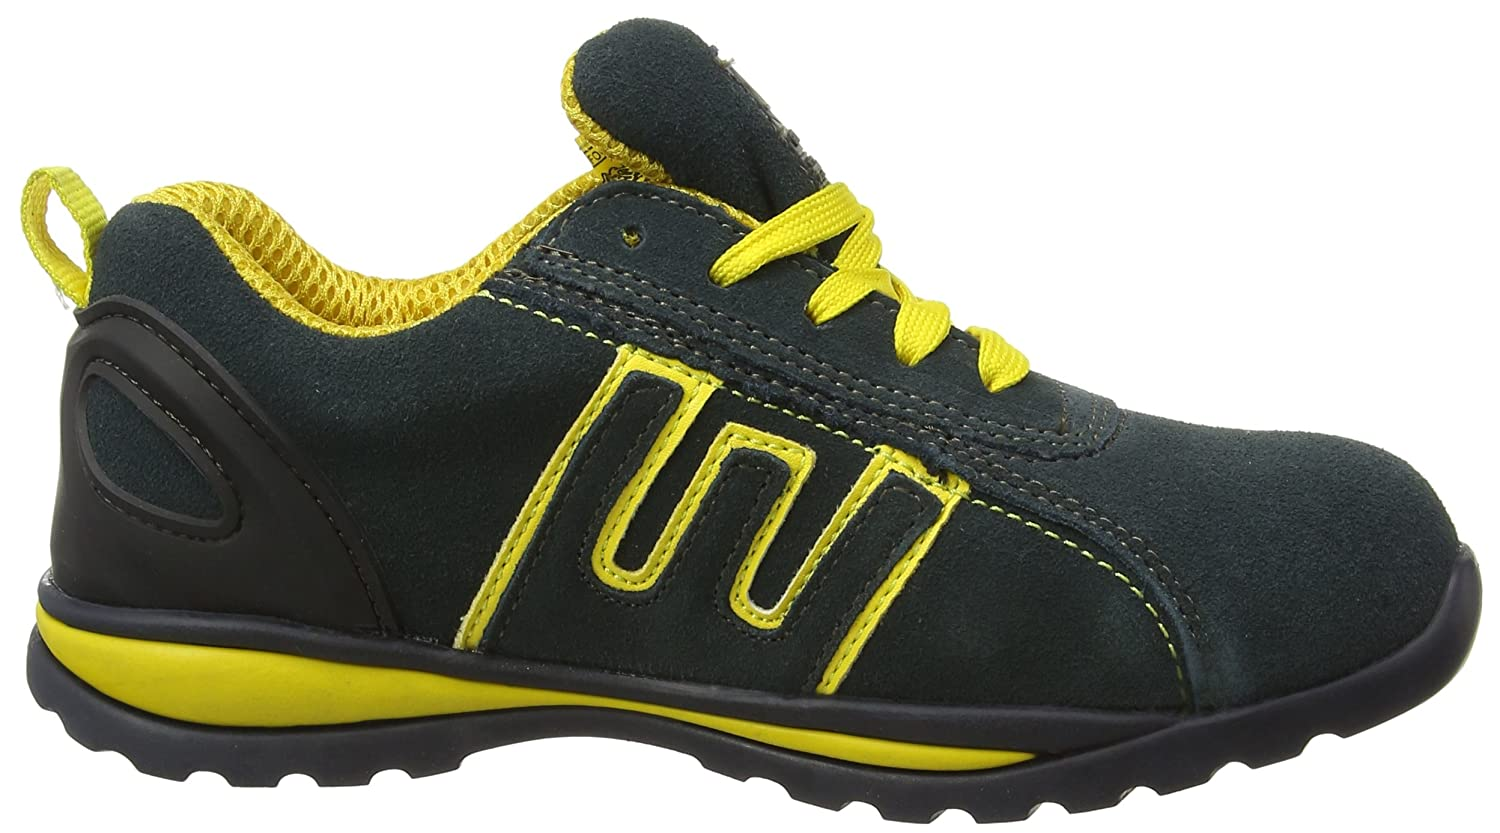 Groundwork GR86 Zapatos de Seguridad de Cuero, Unisex, Azul (Navy/Yellow), 37 EU (3 UK)